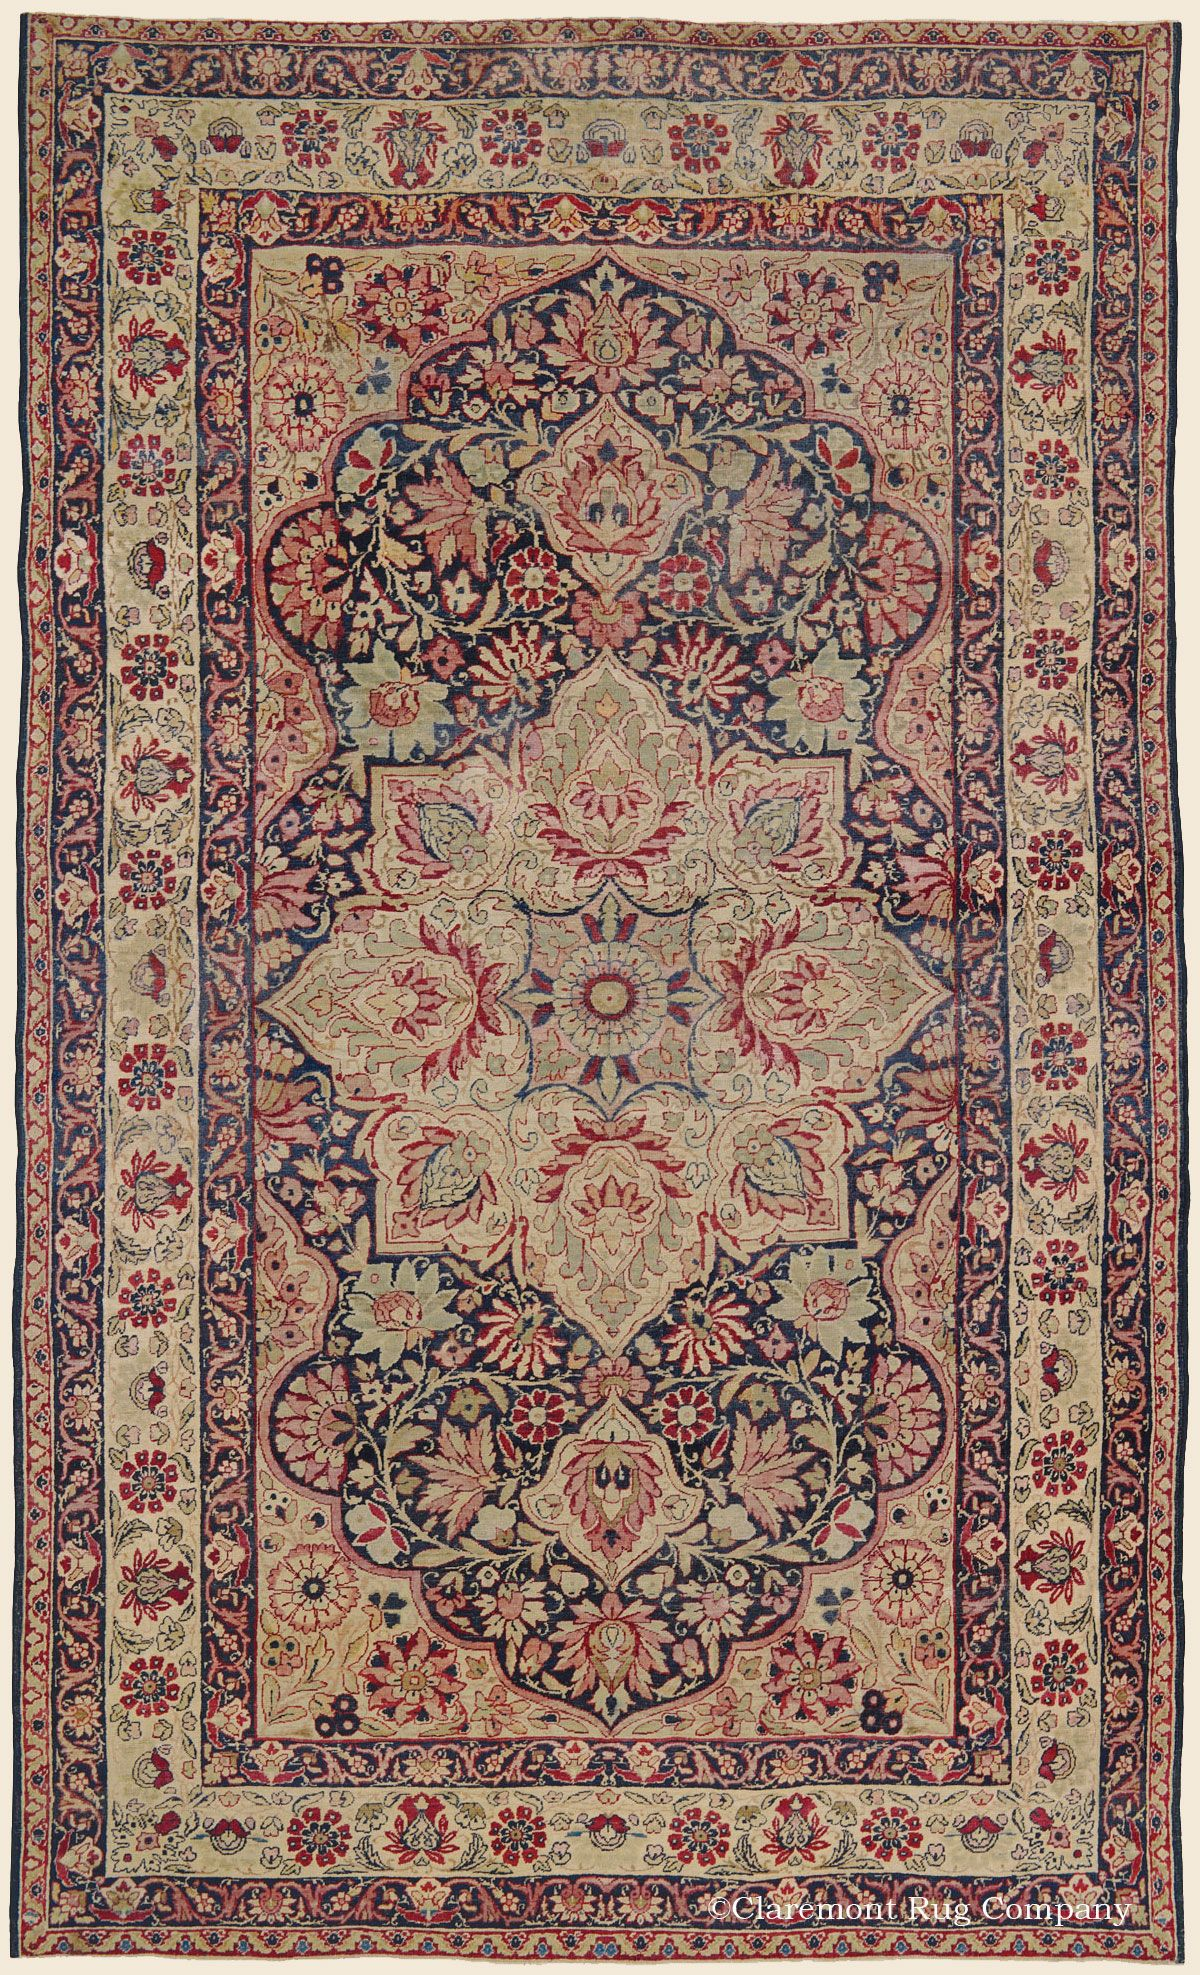 Sorry This Rug Is No Longer Available Claremont Rug Company In 2020 Antique Rugs Persian Carpet Antique Persian Carpet Persian Rug Designs